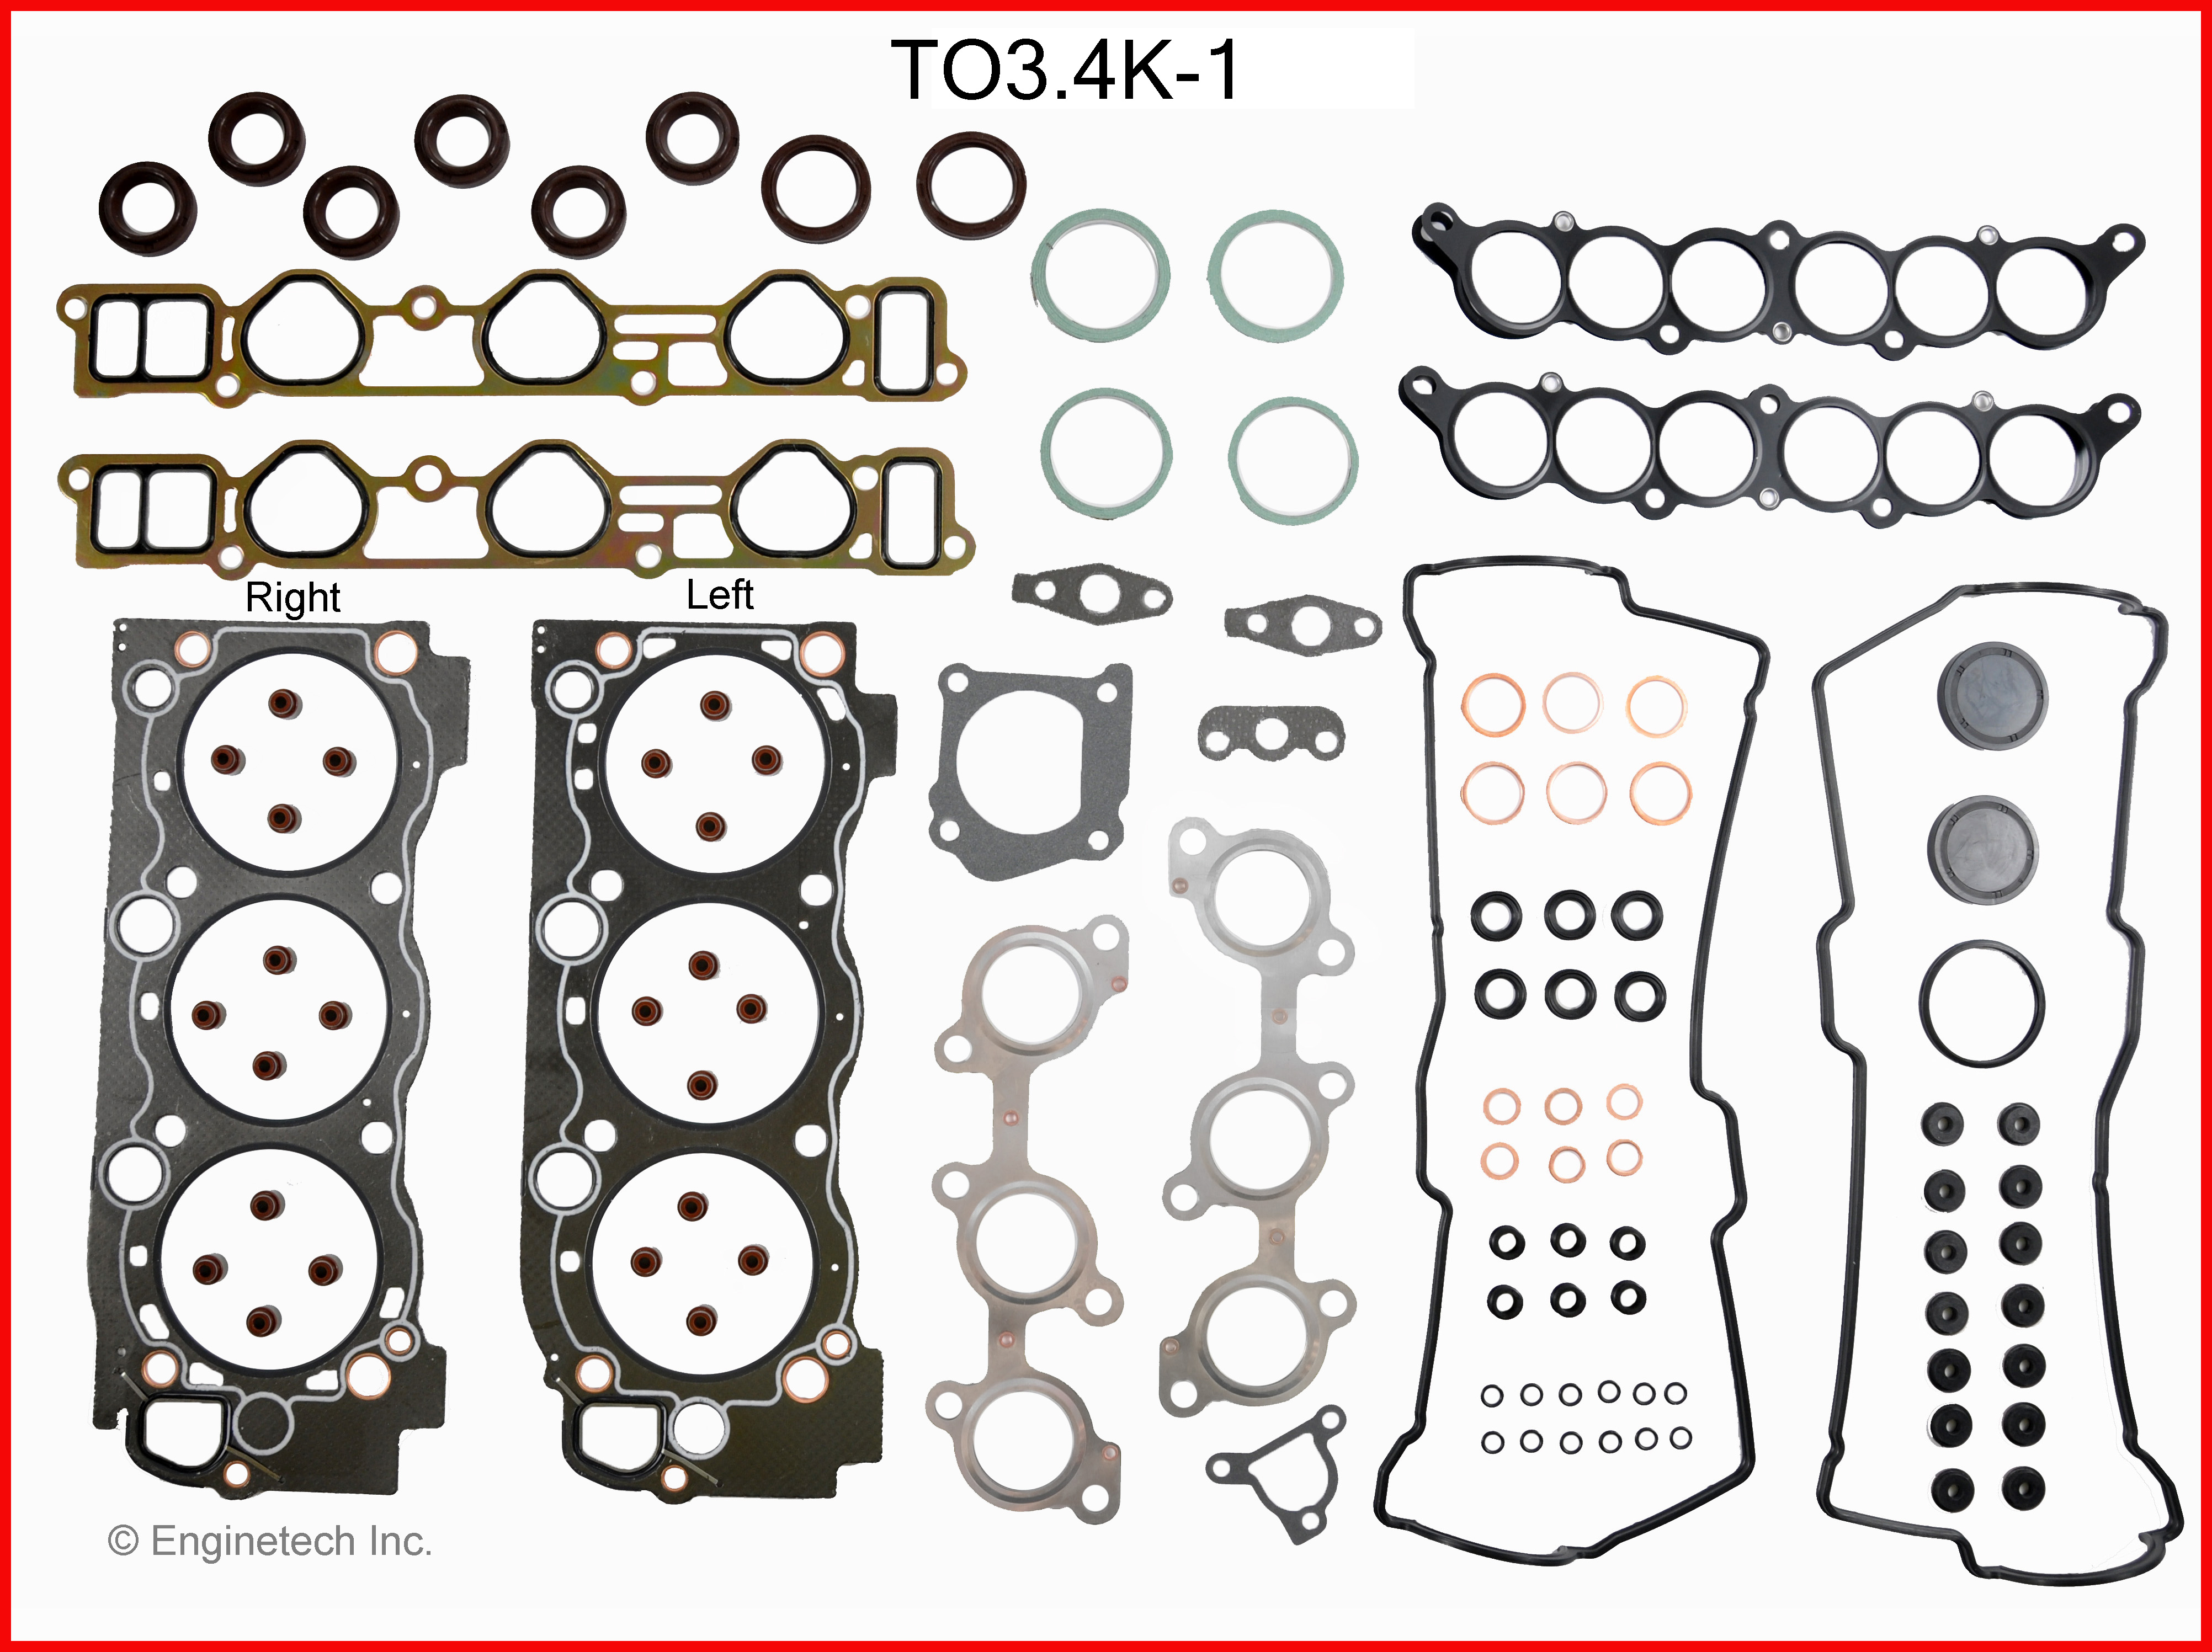 TO3.4K-1 Gasket Set - Full Enginetech